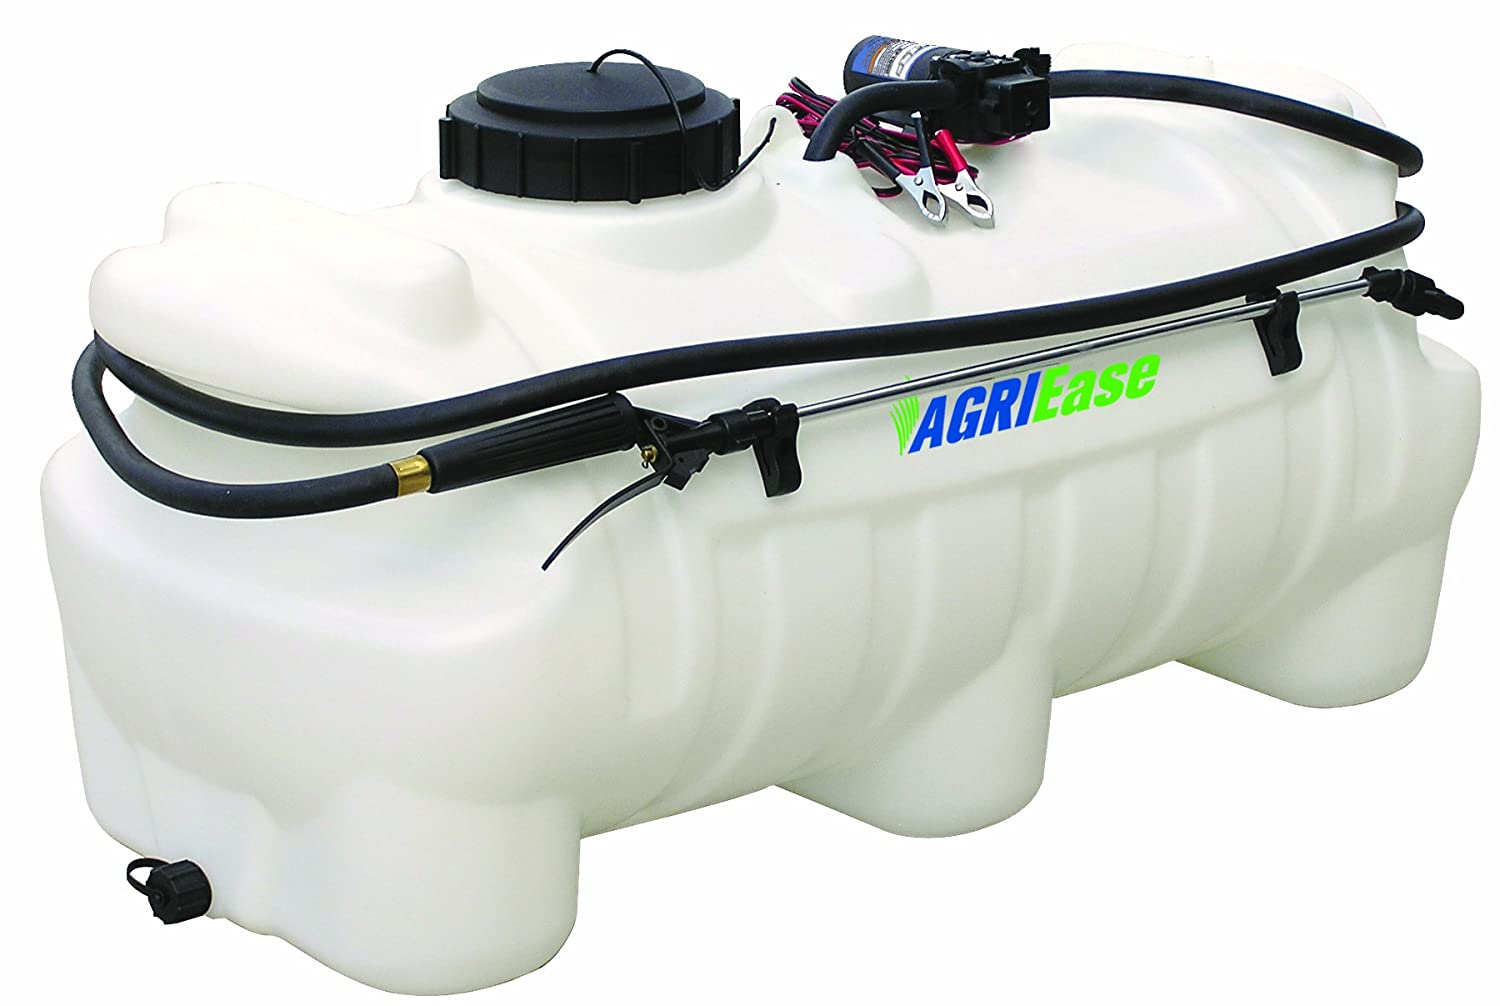 BE AGRIEase 25-Gallon ATV Sprayer